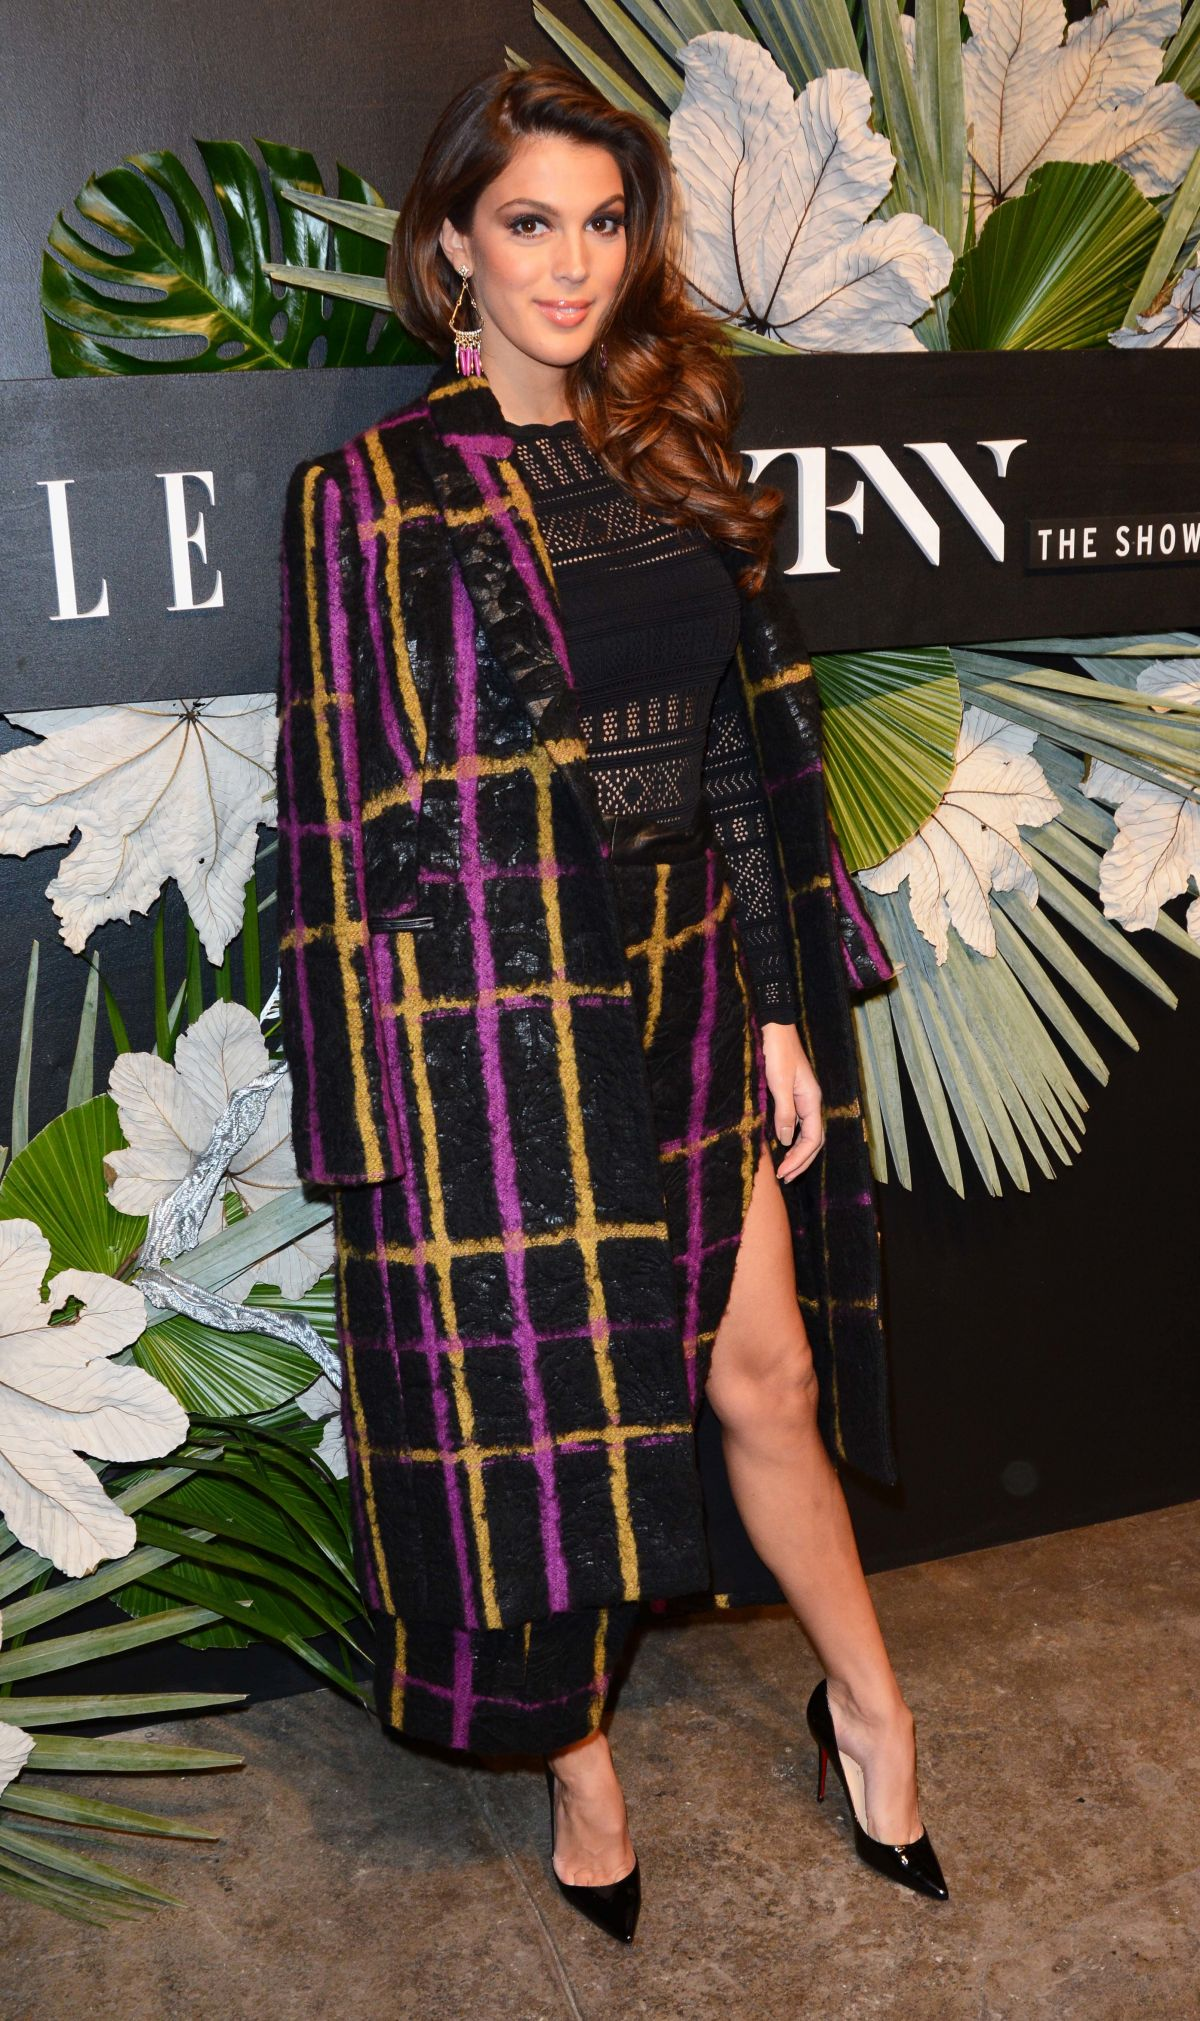 IRIS MITTENAERE at ELLE, E! and Img New York Fashion Week Kick-off Party in New York 02/08/2017